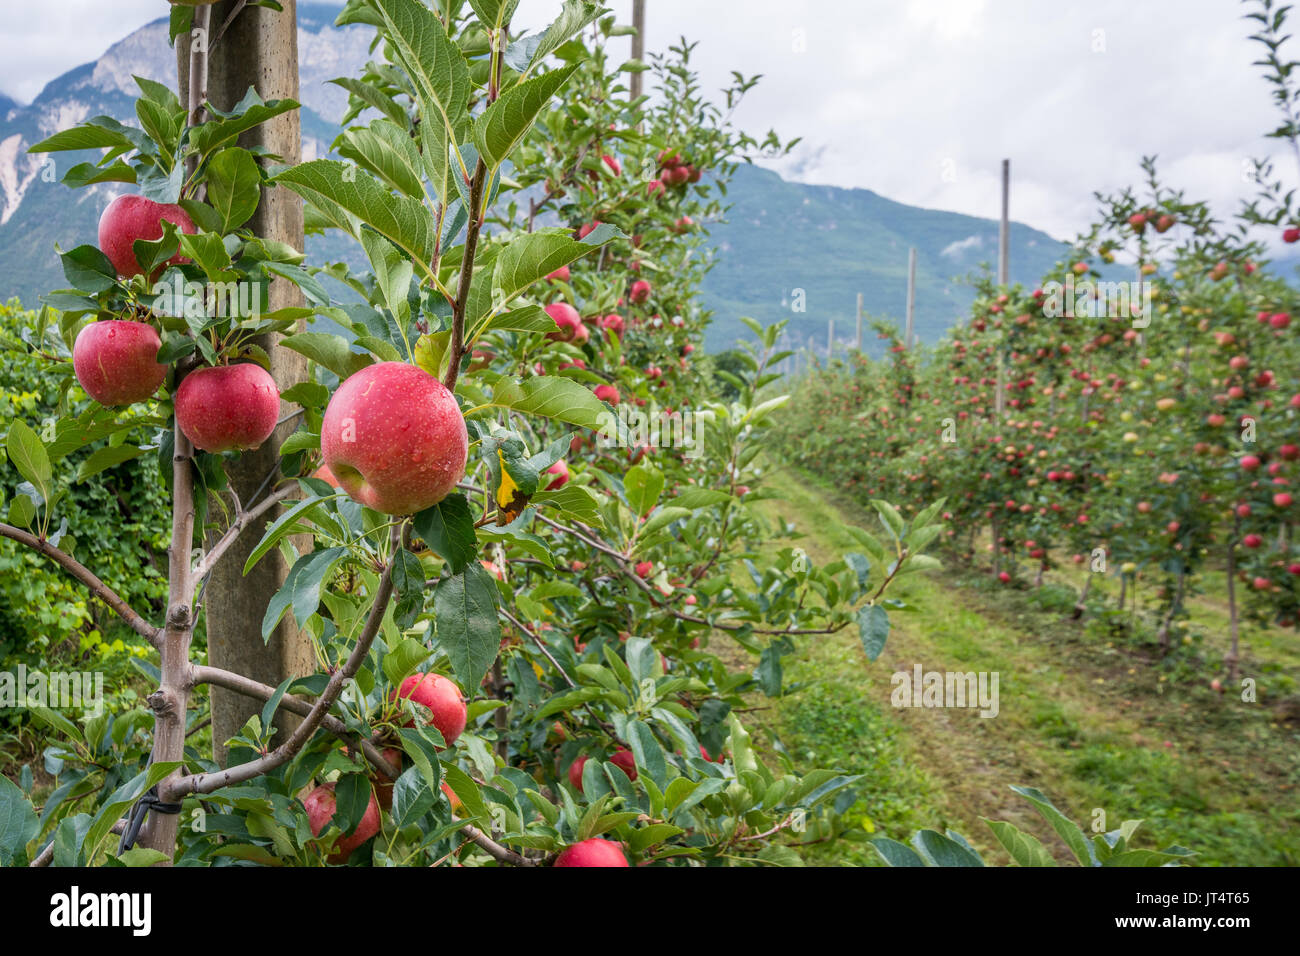 Apples hanging from a tree branch in an apple orchard of South Tyrol countryside, italy. Stock Photo